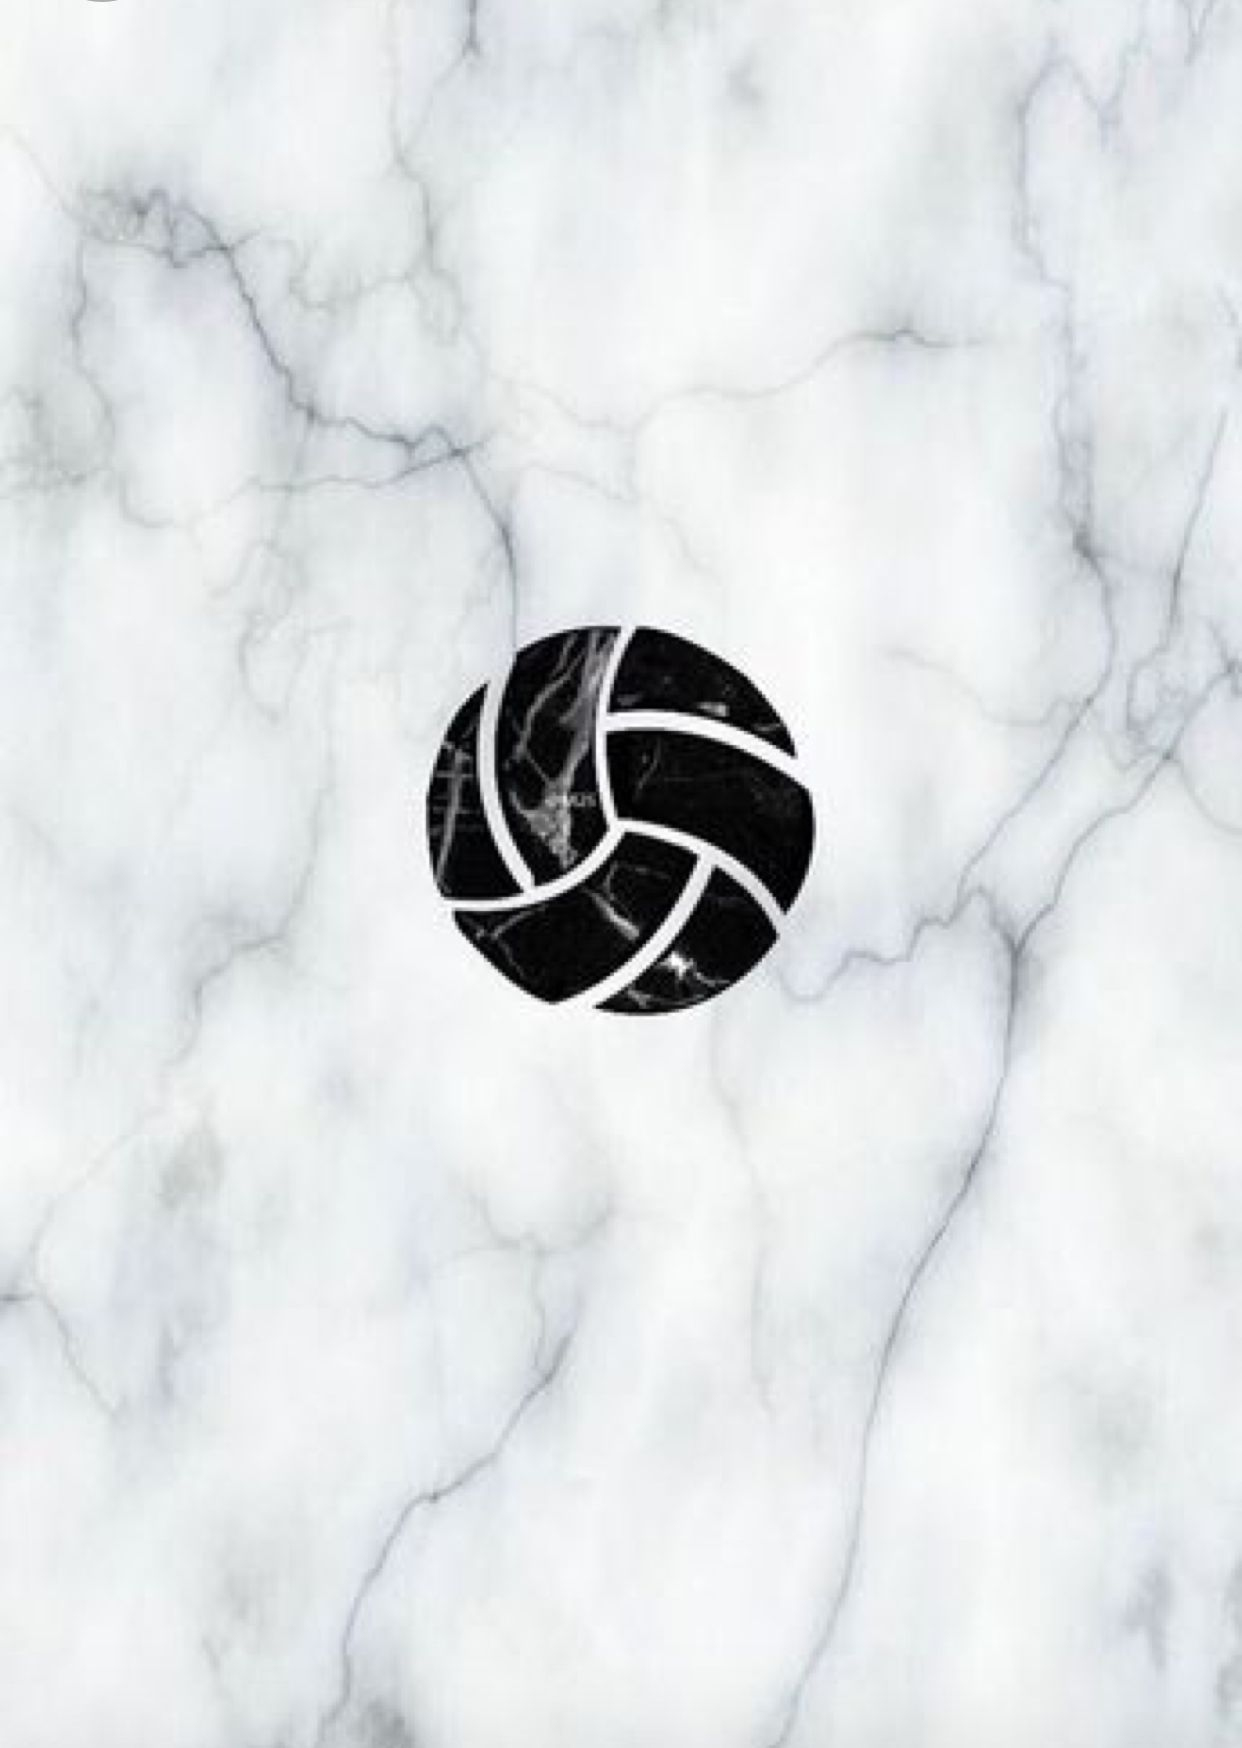 Pin By Isabella Maceno On Volleyball In 2020 Volleyball Wallpaper Volleyball Backgrounds Sport Volleyball